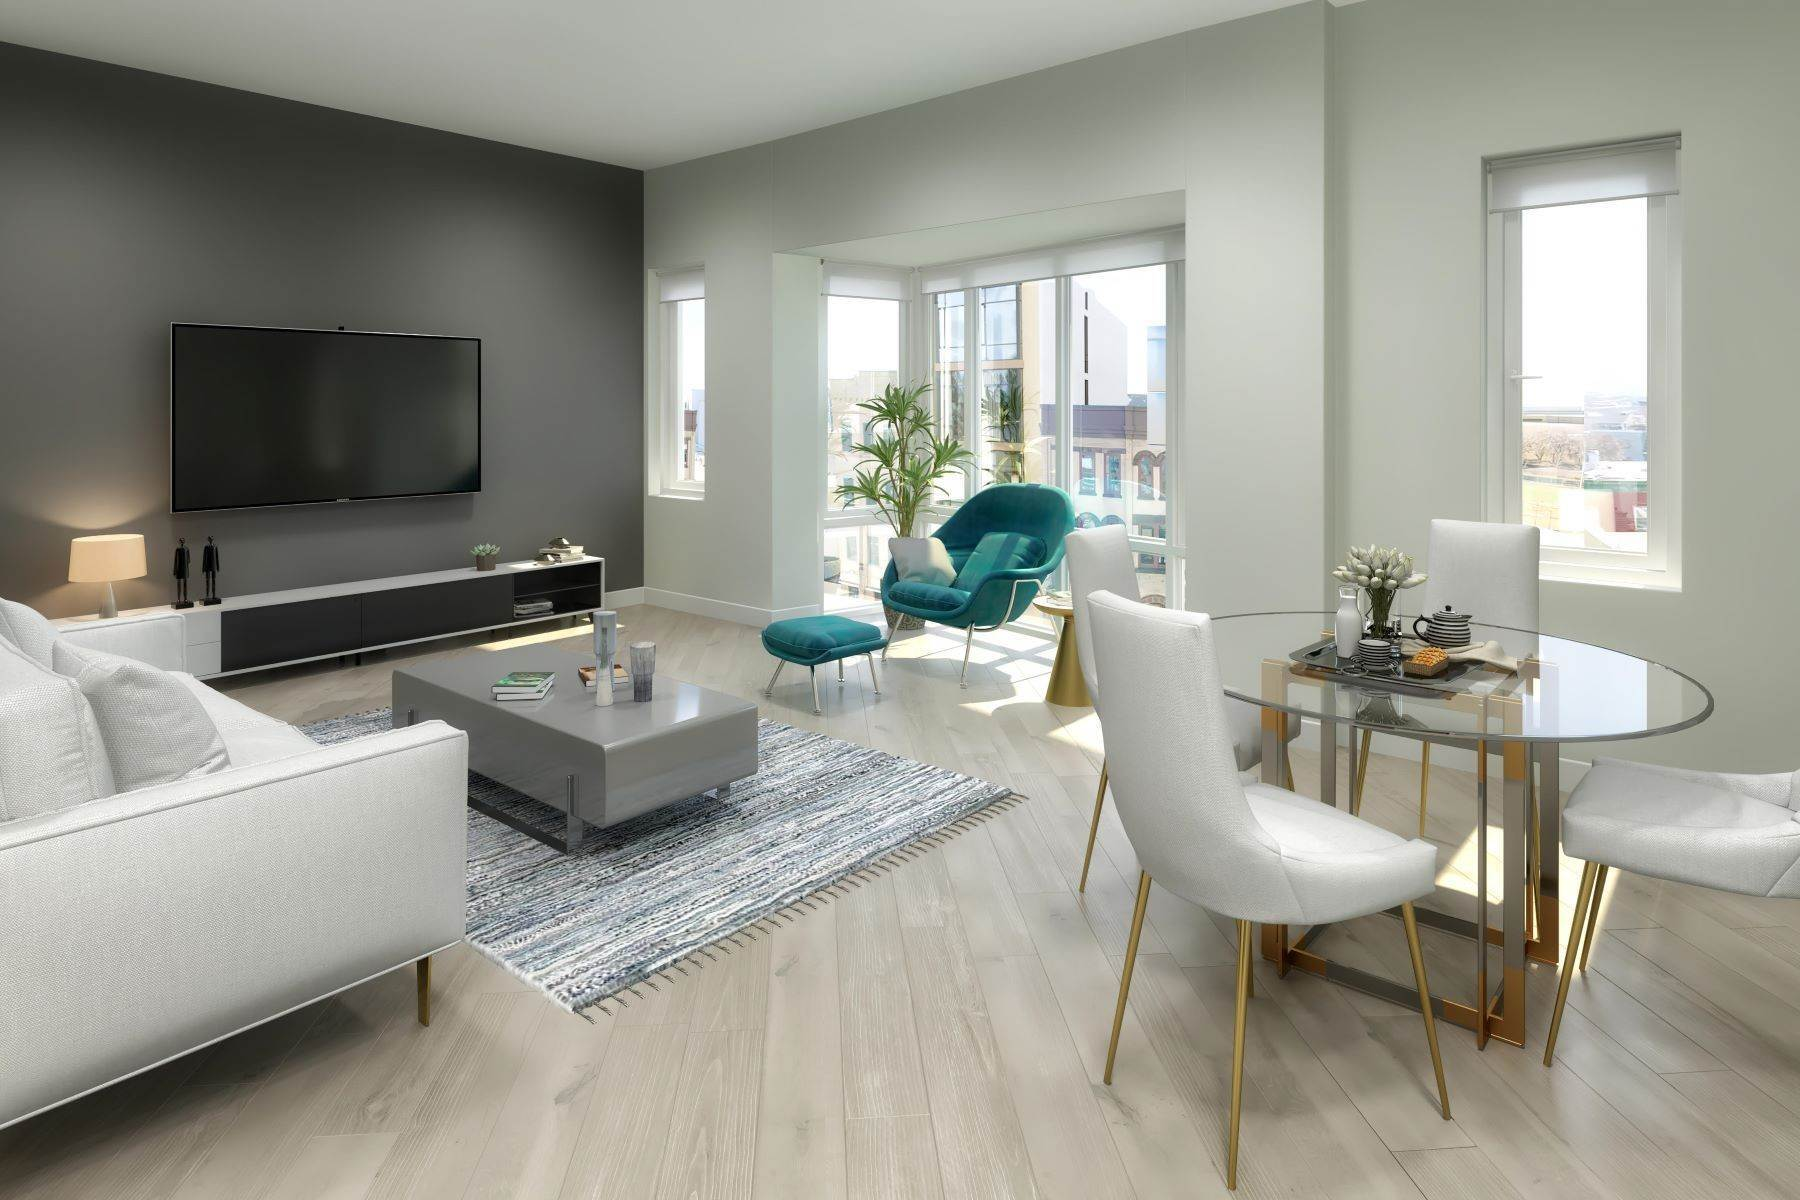 Condominiums for Sale at Welcome to downtown Jersey City's newest luxury boutique condominium building, 332 Newark Avenue, Unit 6B Jersey City, New Jersey 07302 United States